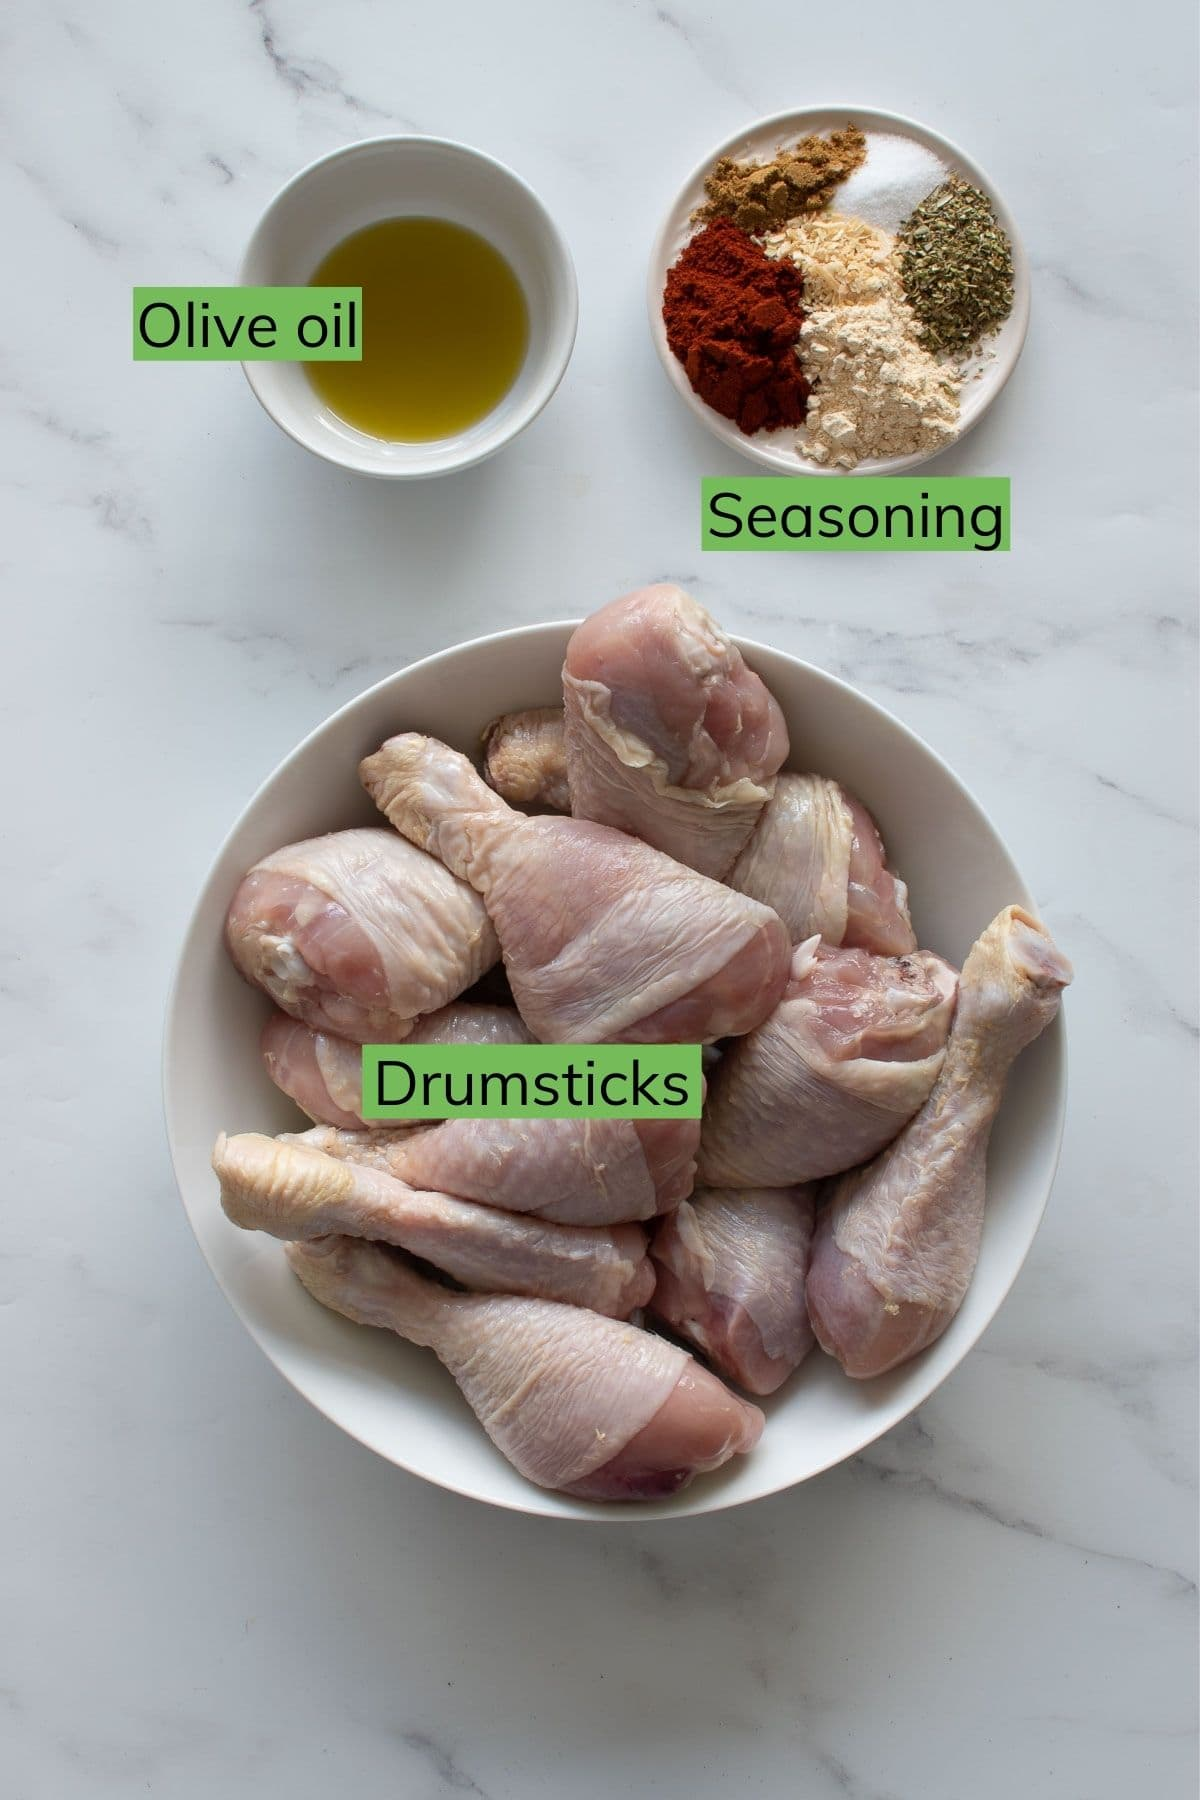 Drumsticks, olive oil and seasoning laid out on a table.